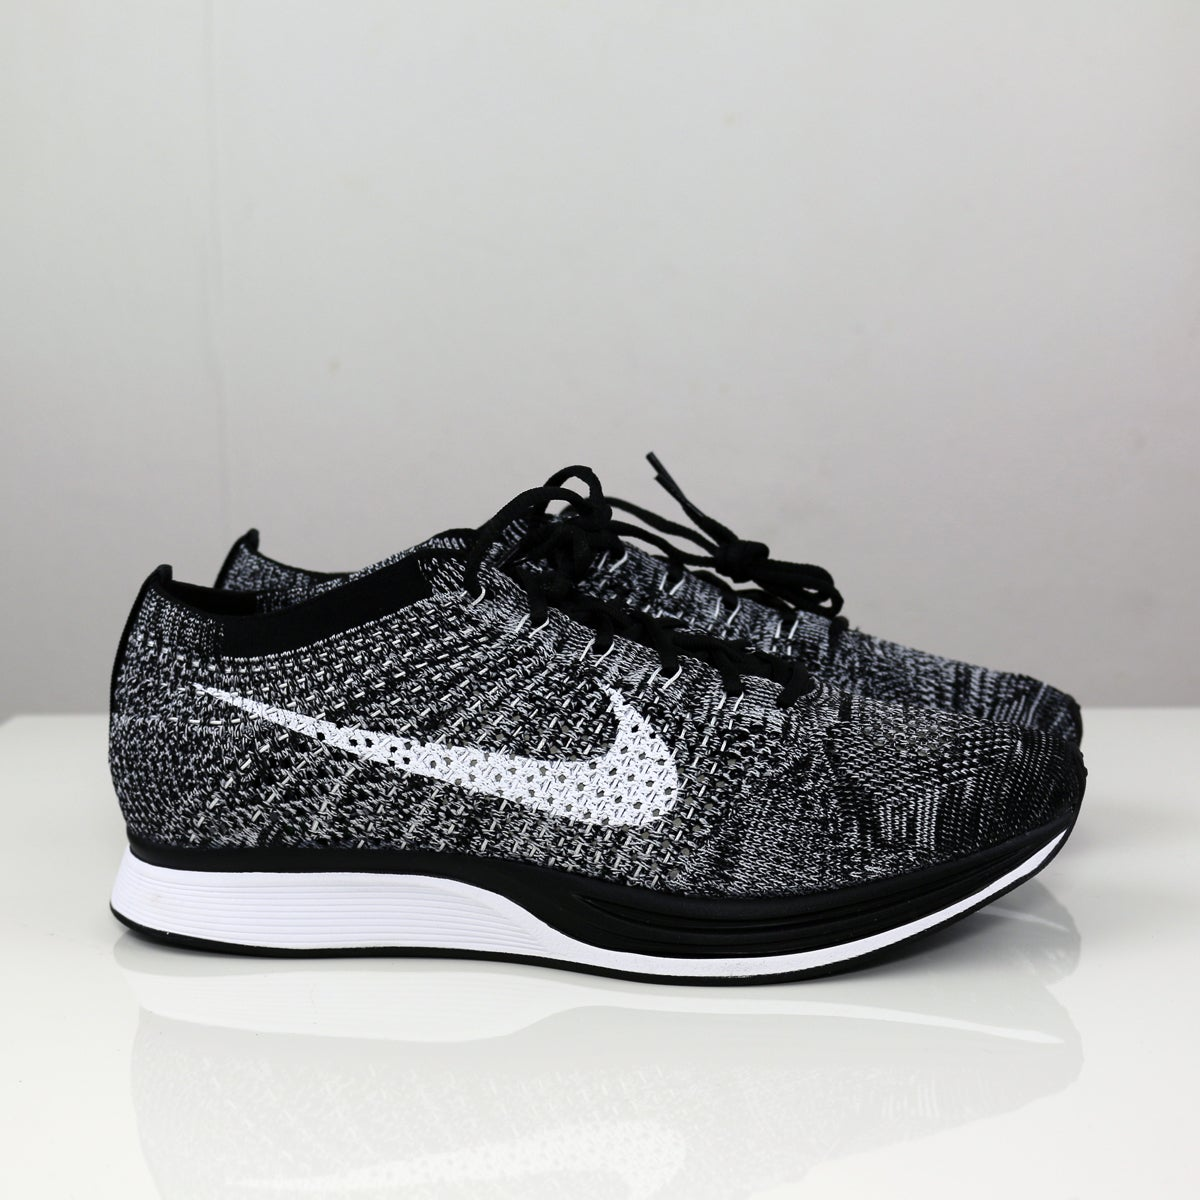 76aae203b0ed ... coupon for image of nike flyknit racer oreo 2.0 5f674 4cc31